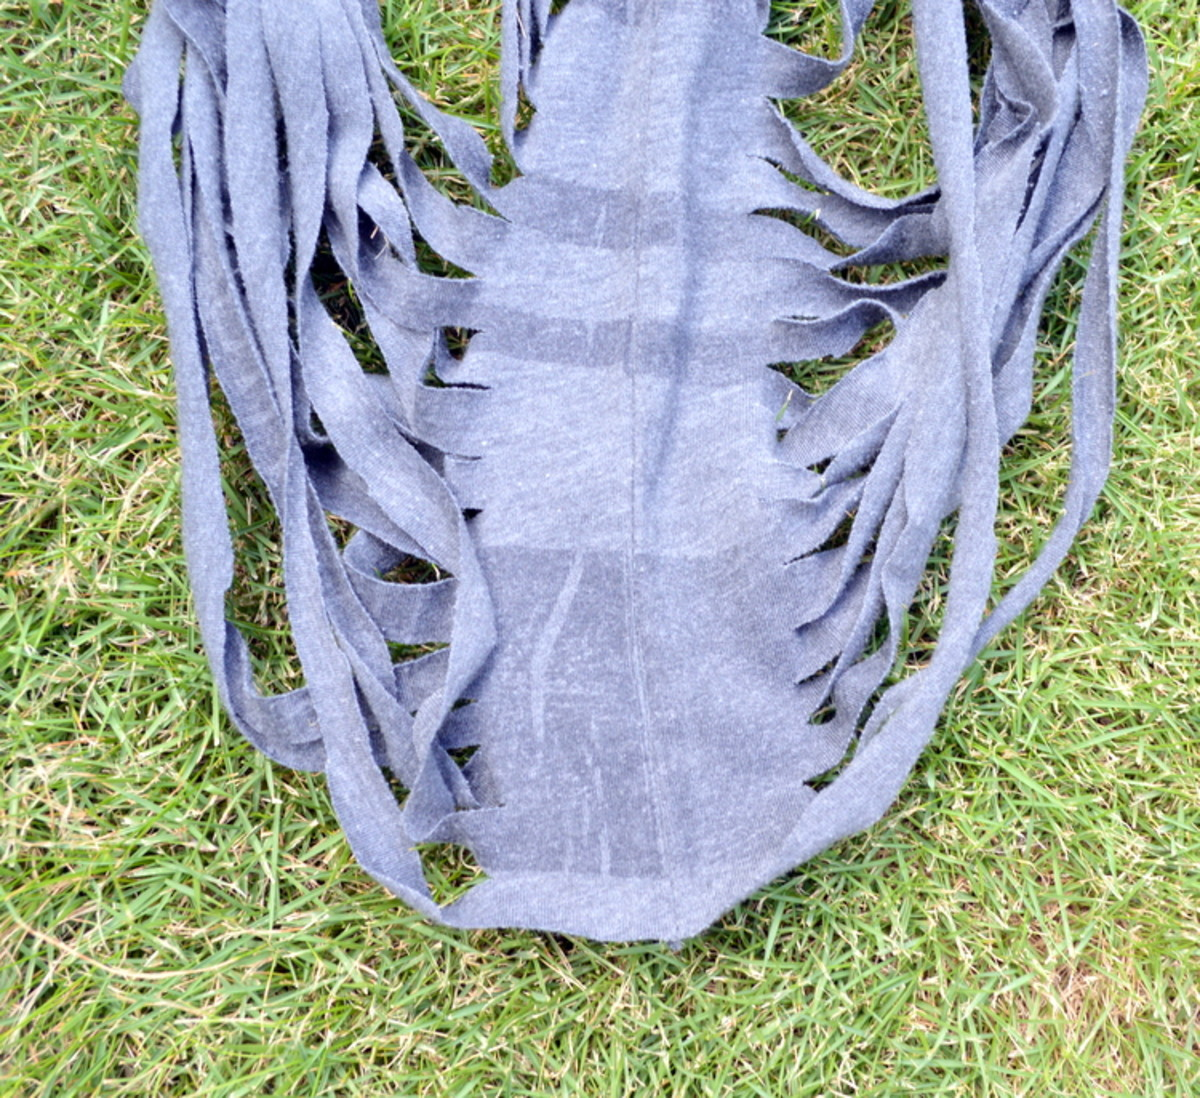 t-shirt-yarn-how-to-upcycle-old-t-shirts